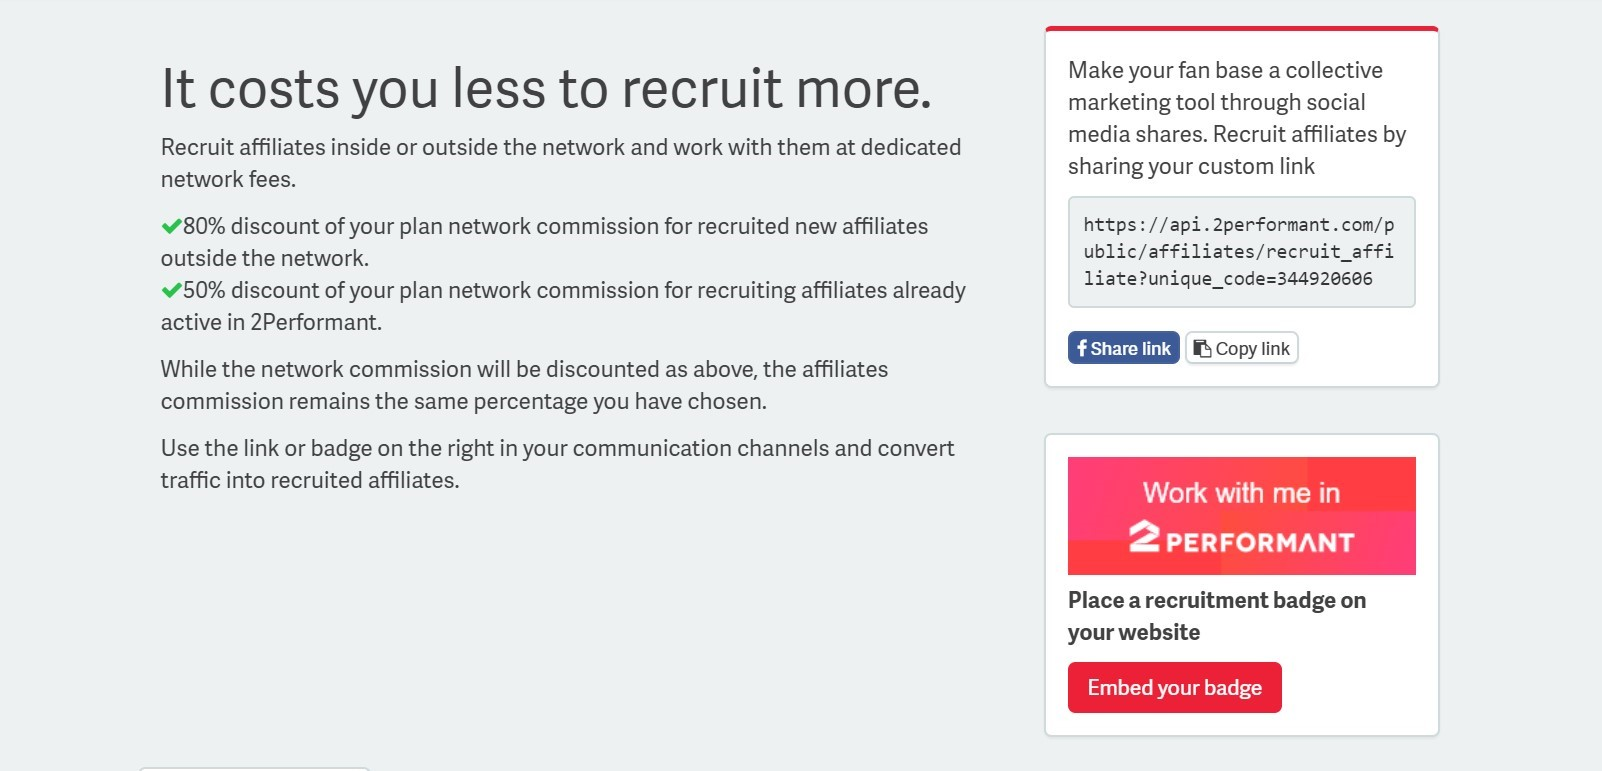 How can I recruit new affiliates? – 2Performant Support